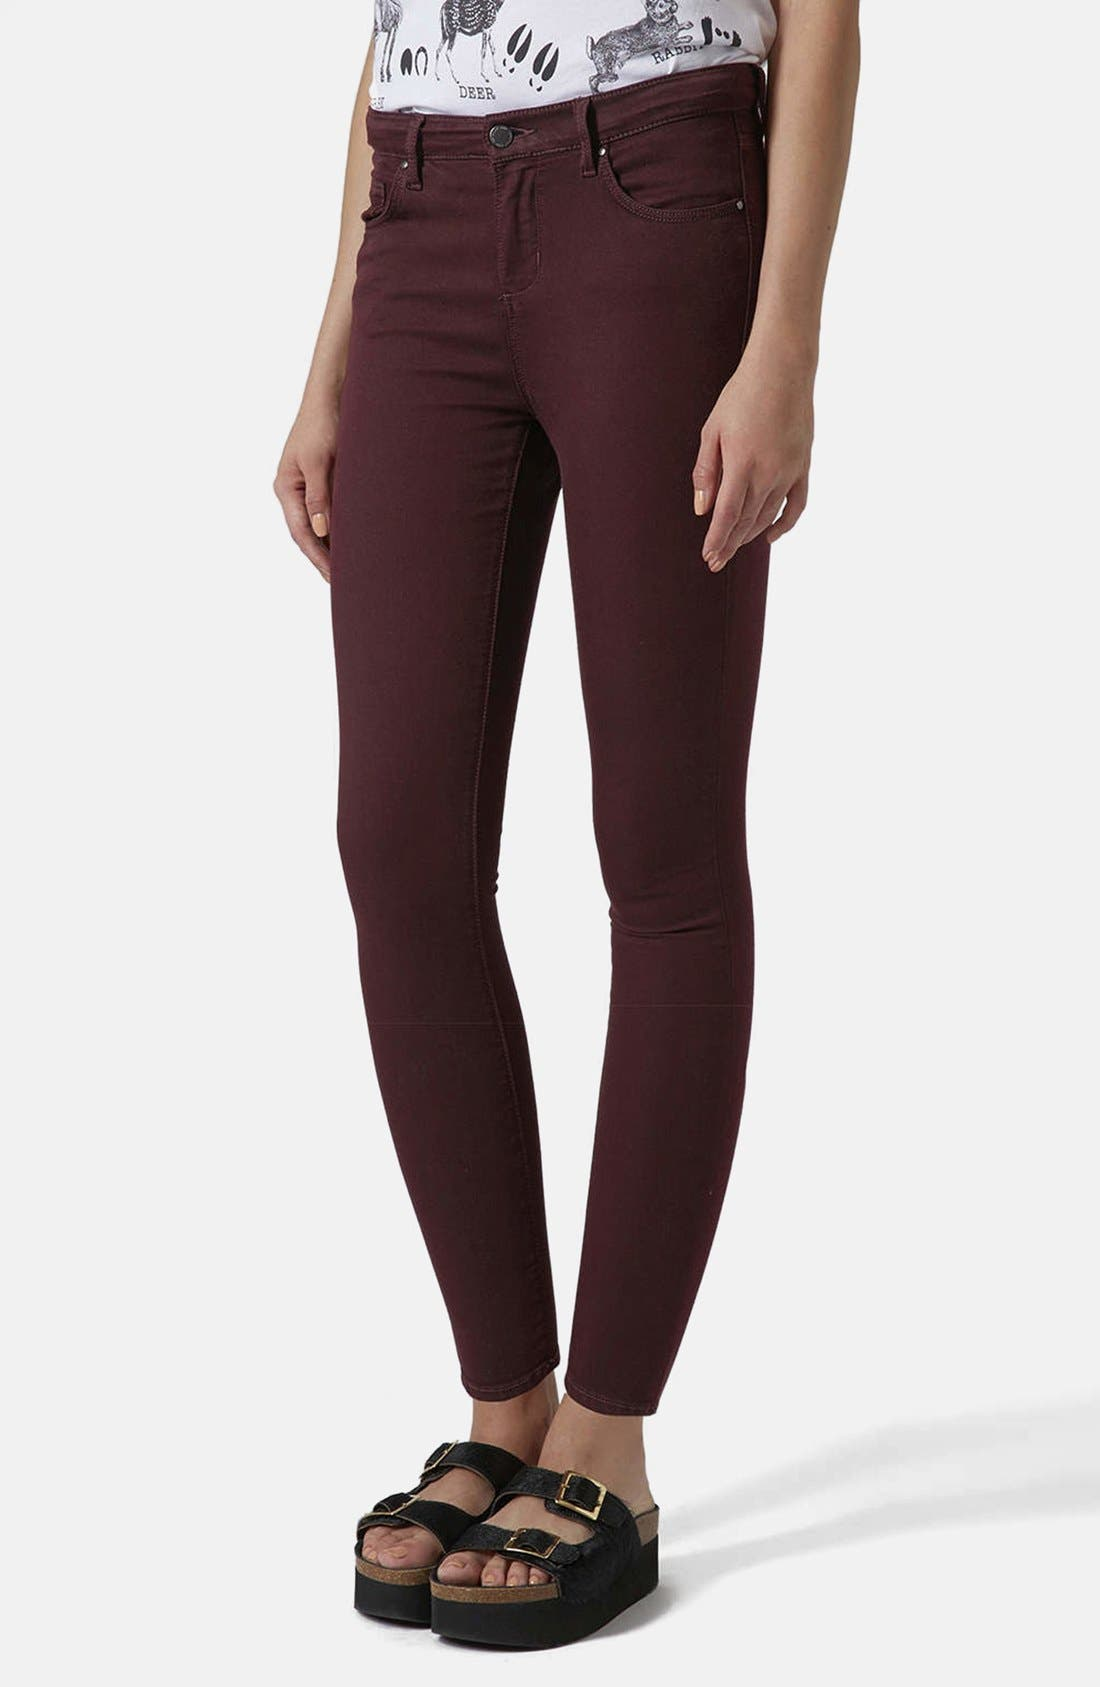 Alternate Image 1 Selected - Topshop Moto 'Leigh' Stretch Ankle Skinny Jeans (Aubergine)